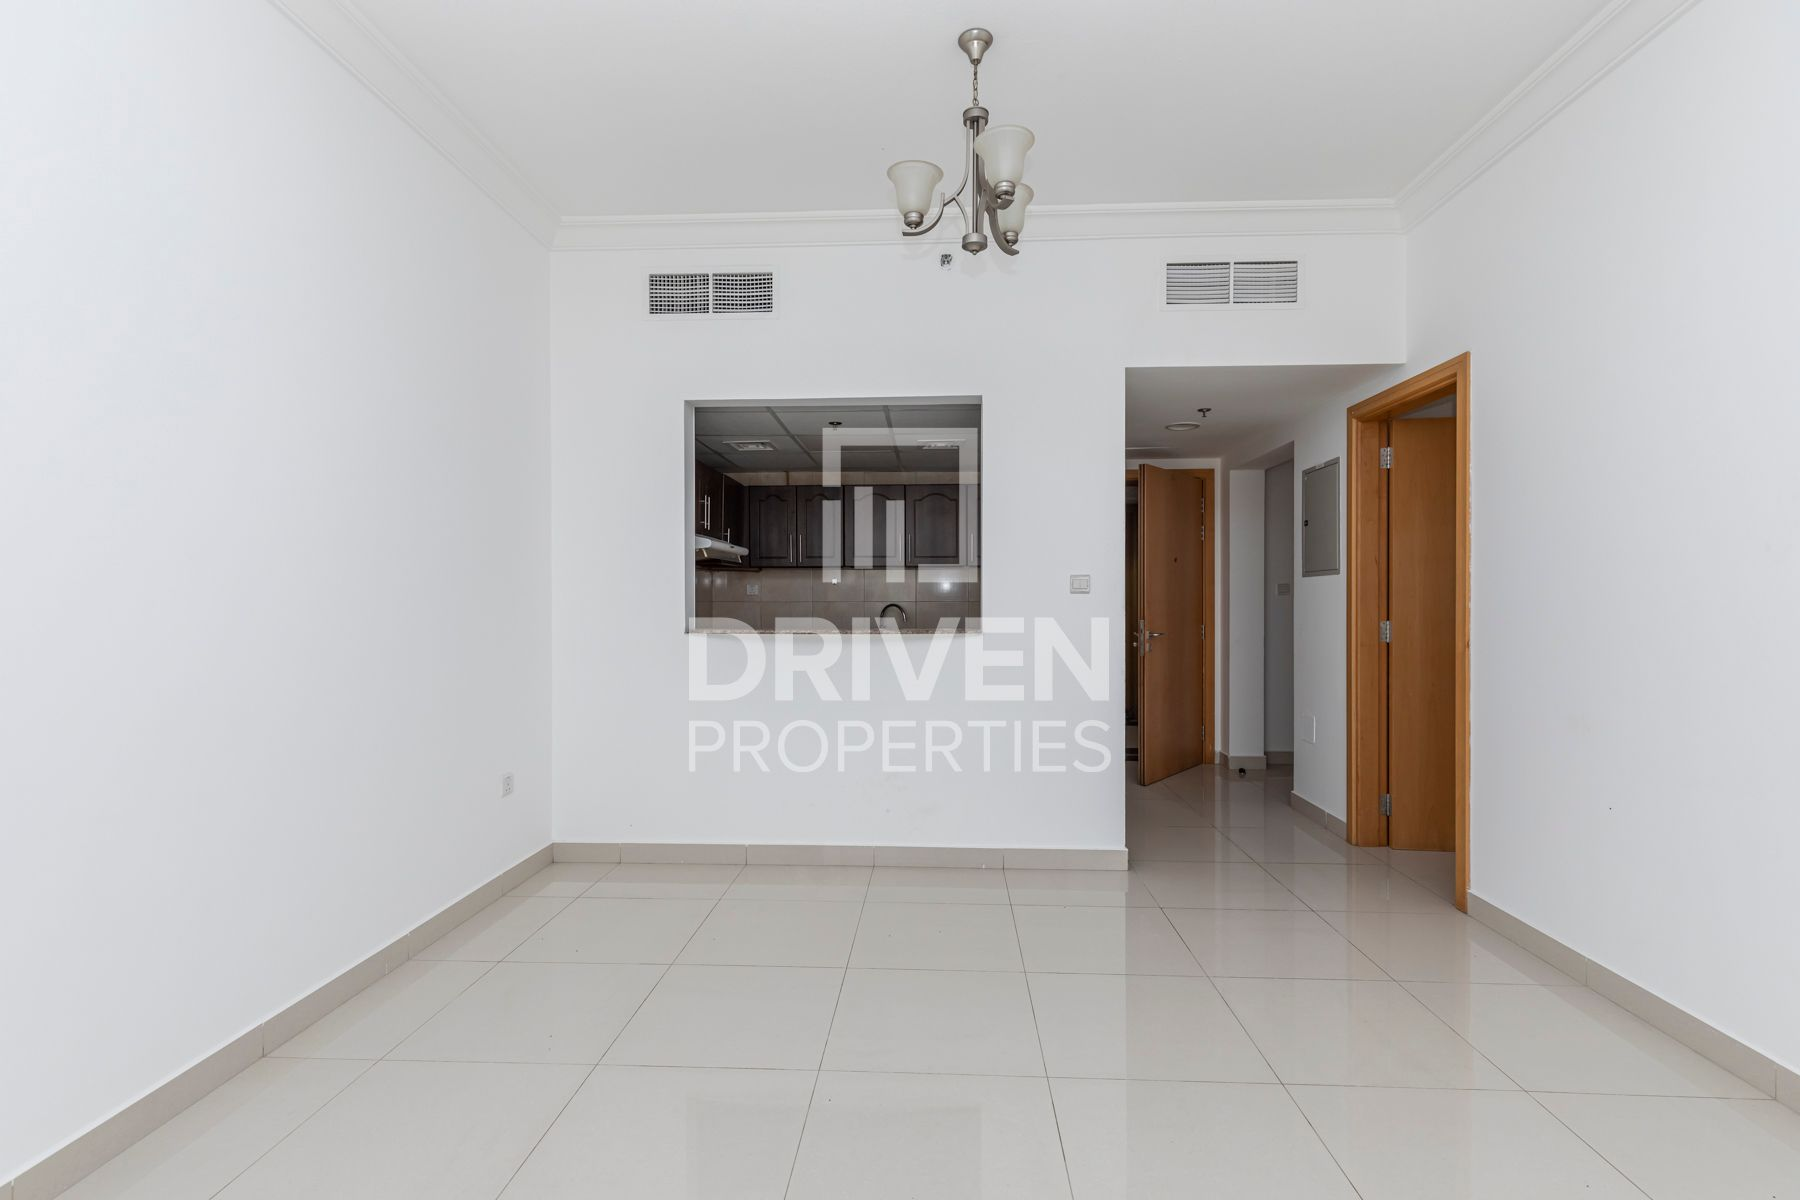 Residential Building For Sale | High ROI